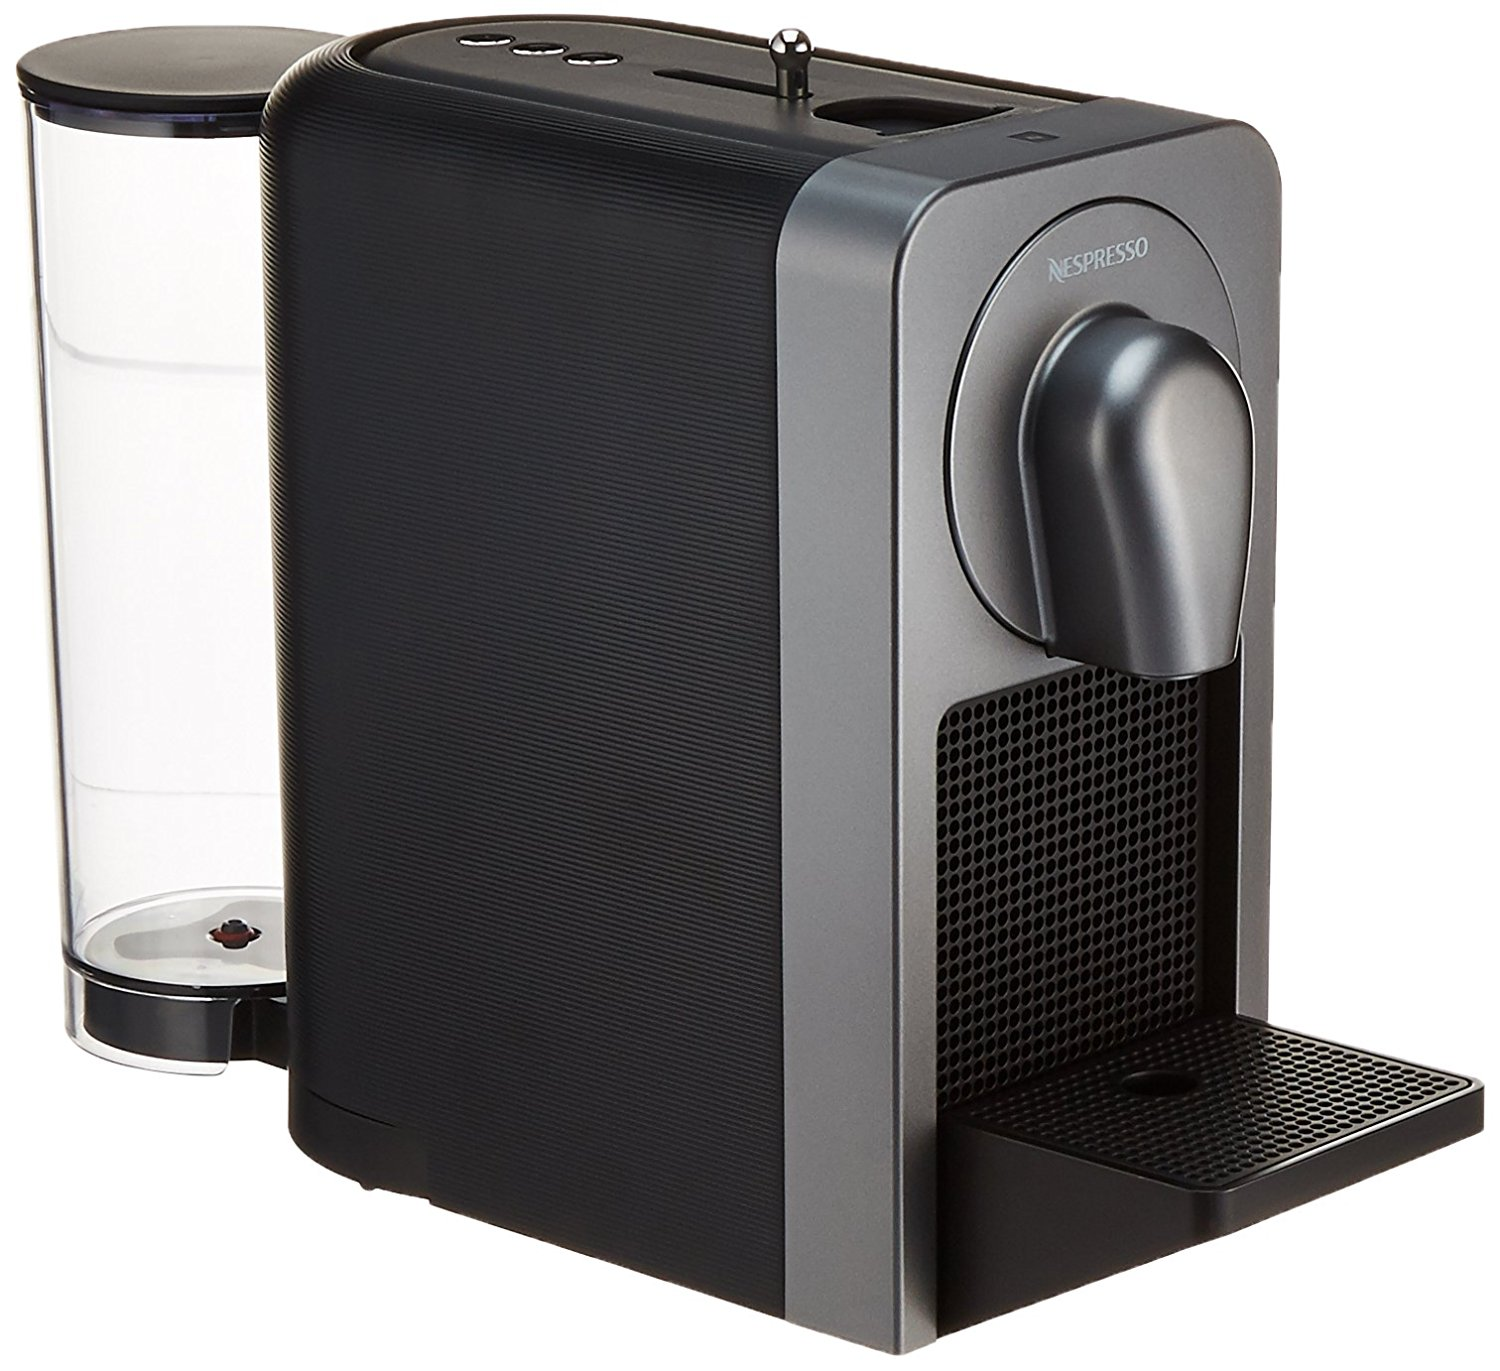 Review of Nespresso Prodigio Espresso Maker